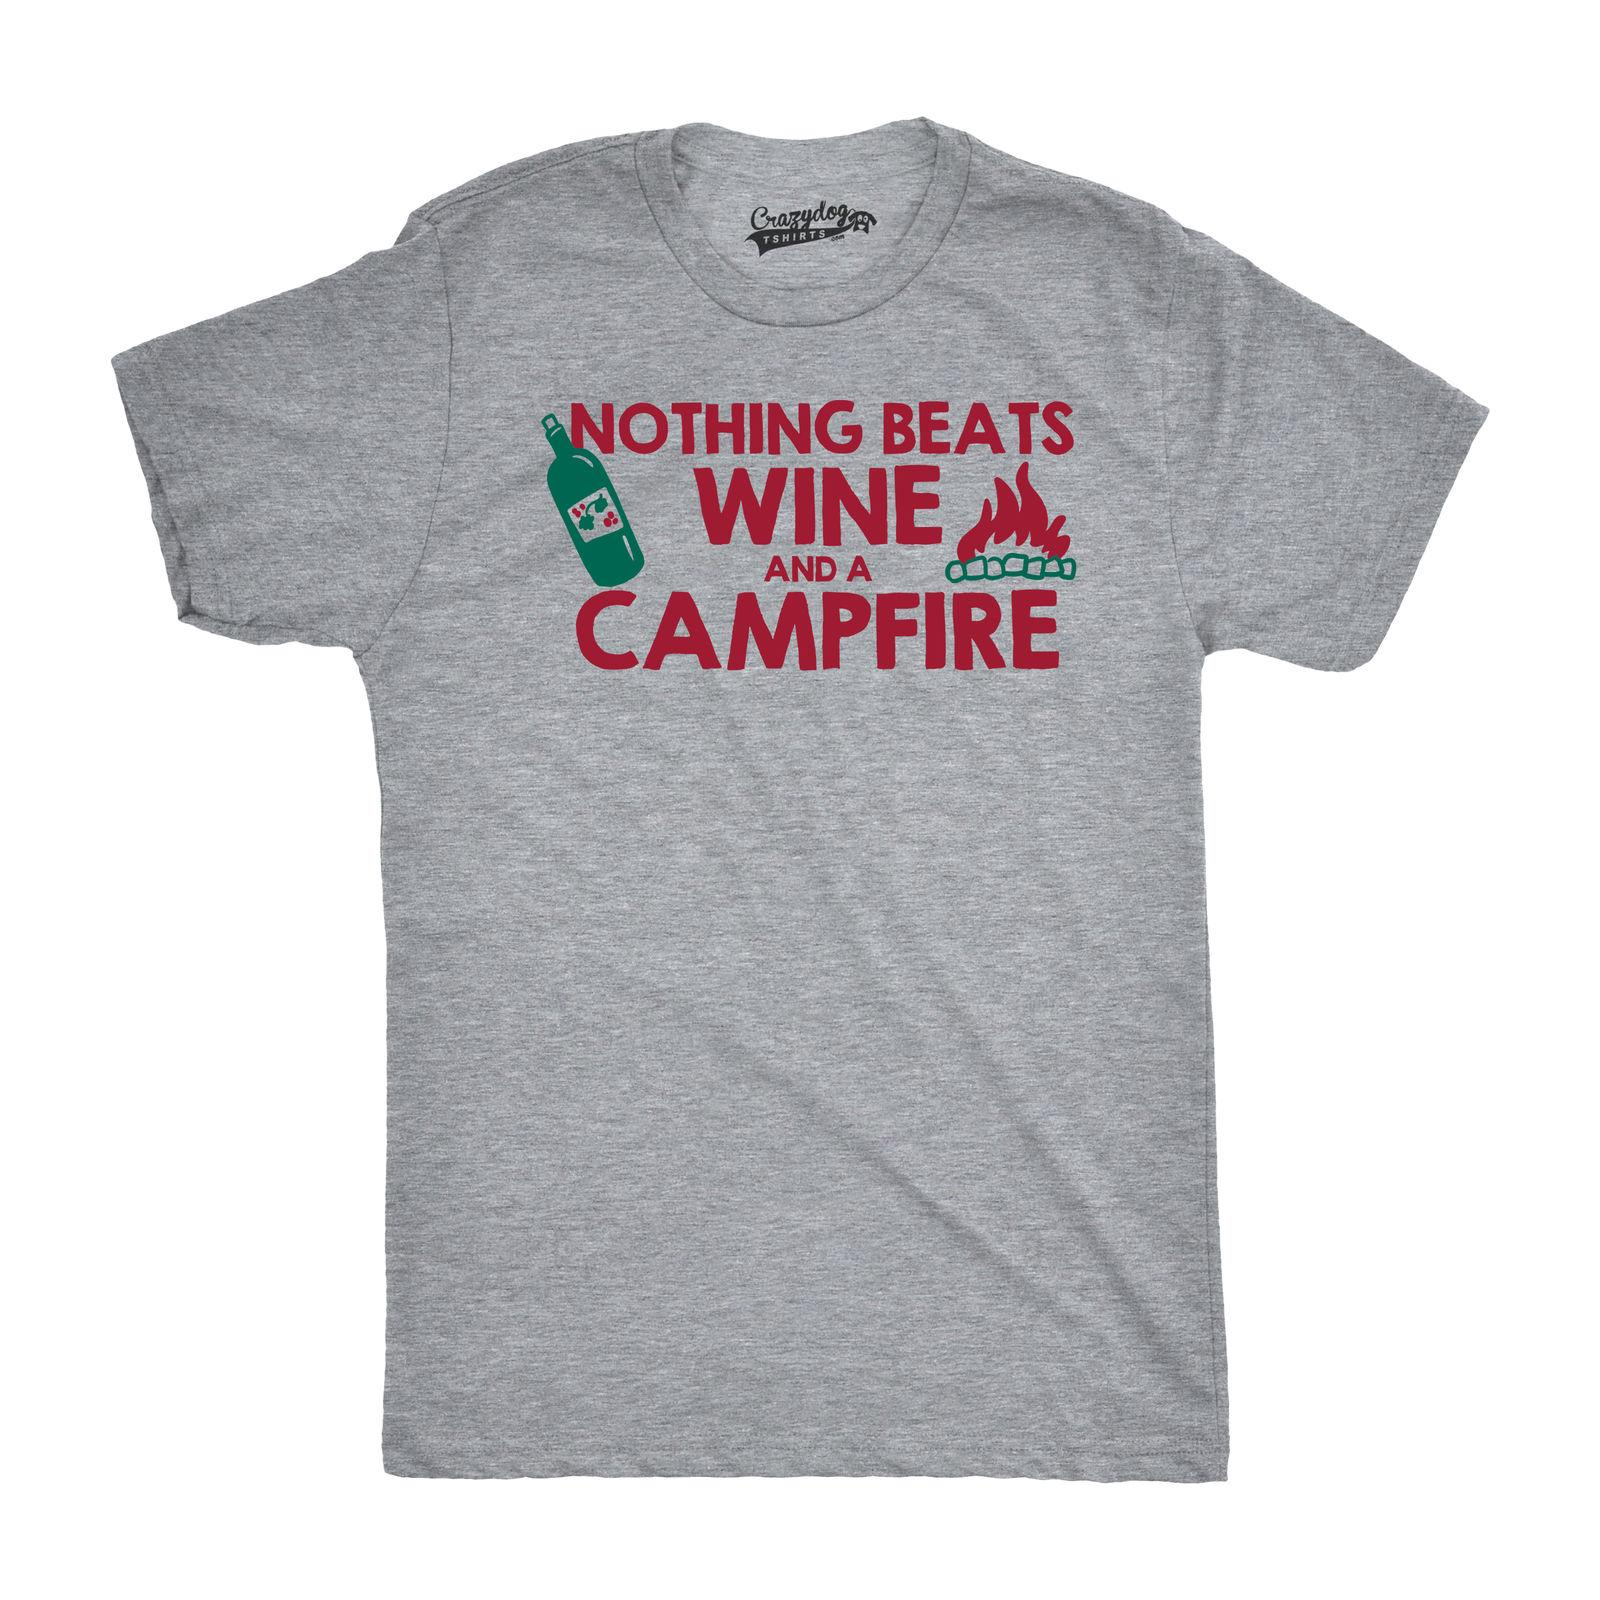 e73fd47df1c3 Mens Wine And a Campfire Tshirt Funny Summer Drinking Wino Tee For Guys  Online with  12.99 Piece on Beidhgate09 s Store